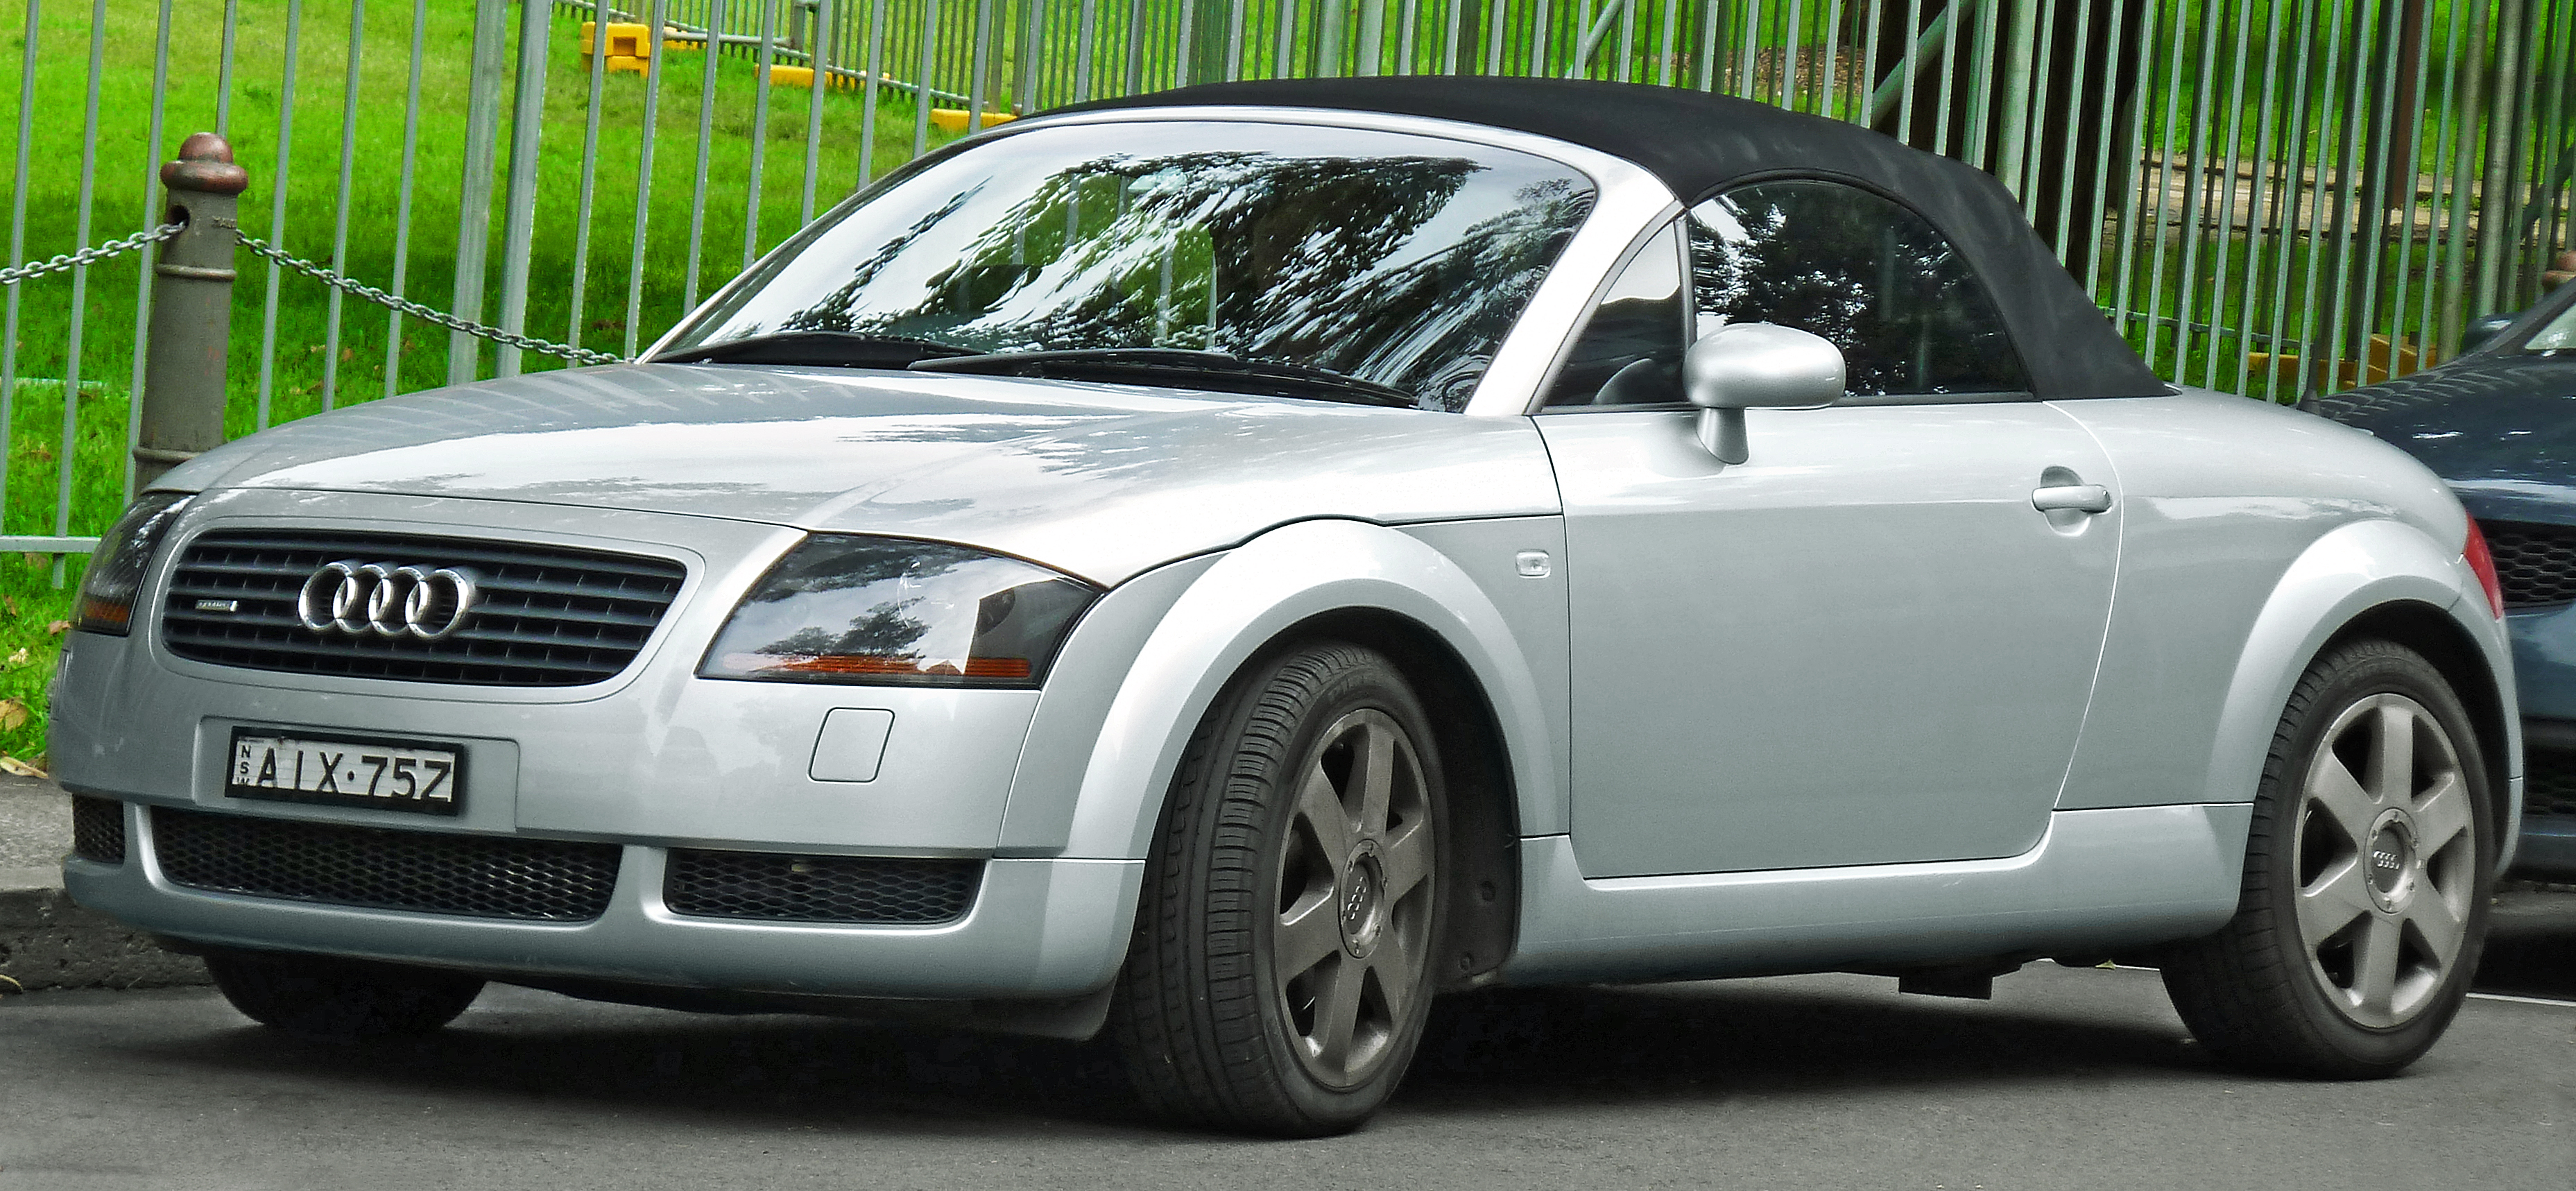 Amazoncom 2001 Audi TT Quattro Reviews Images and